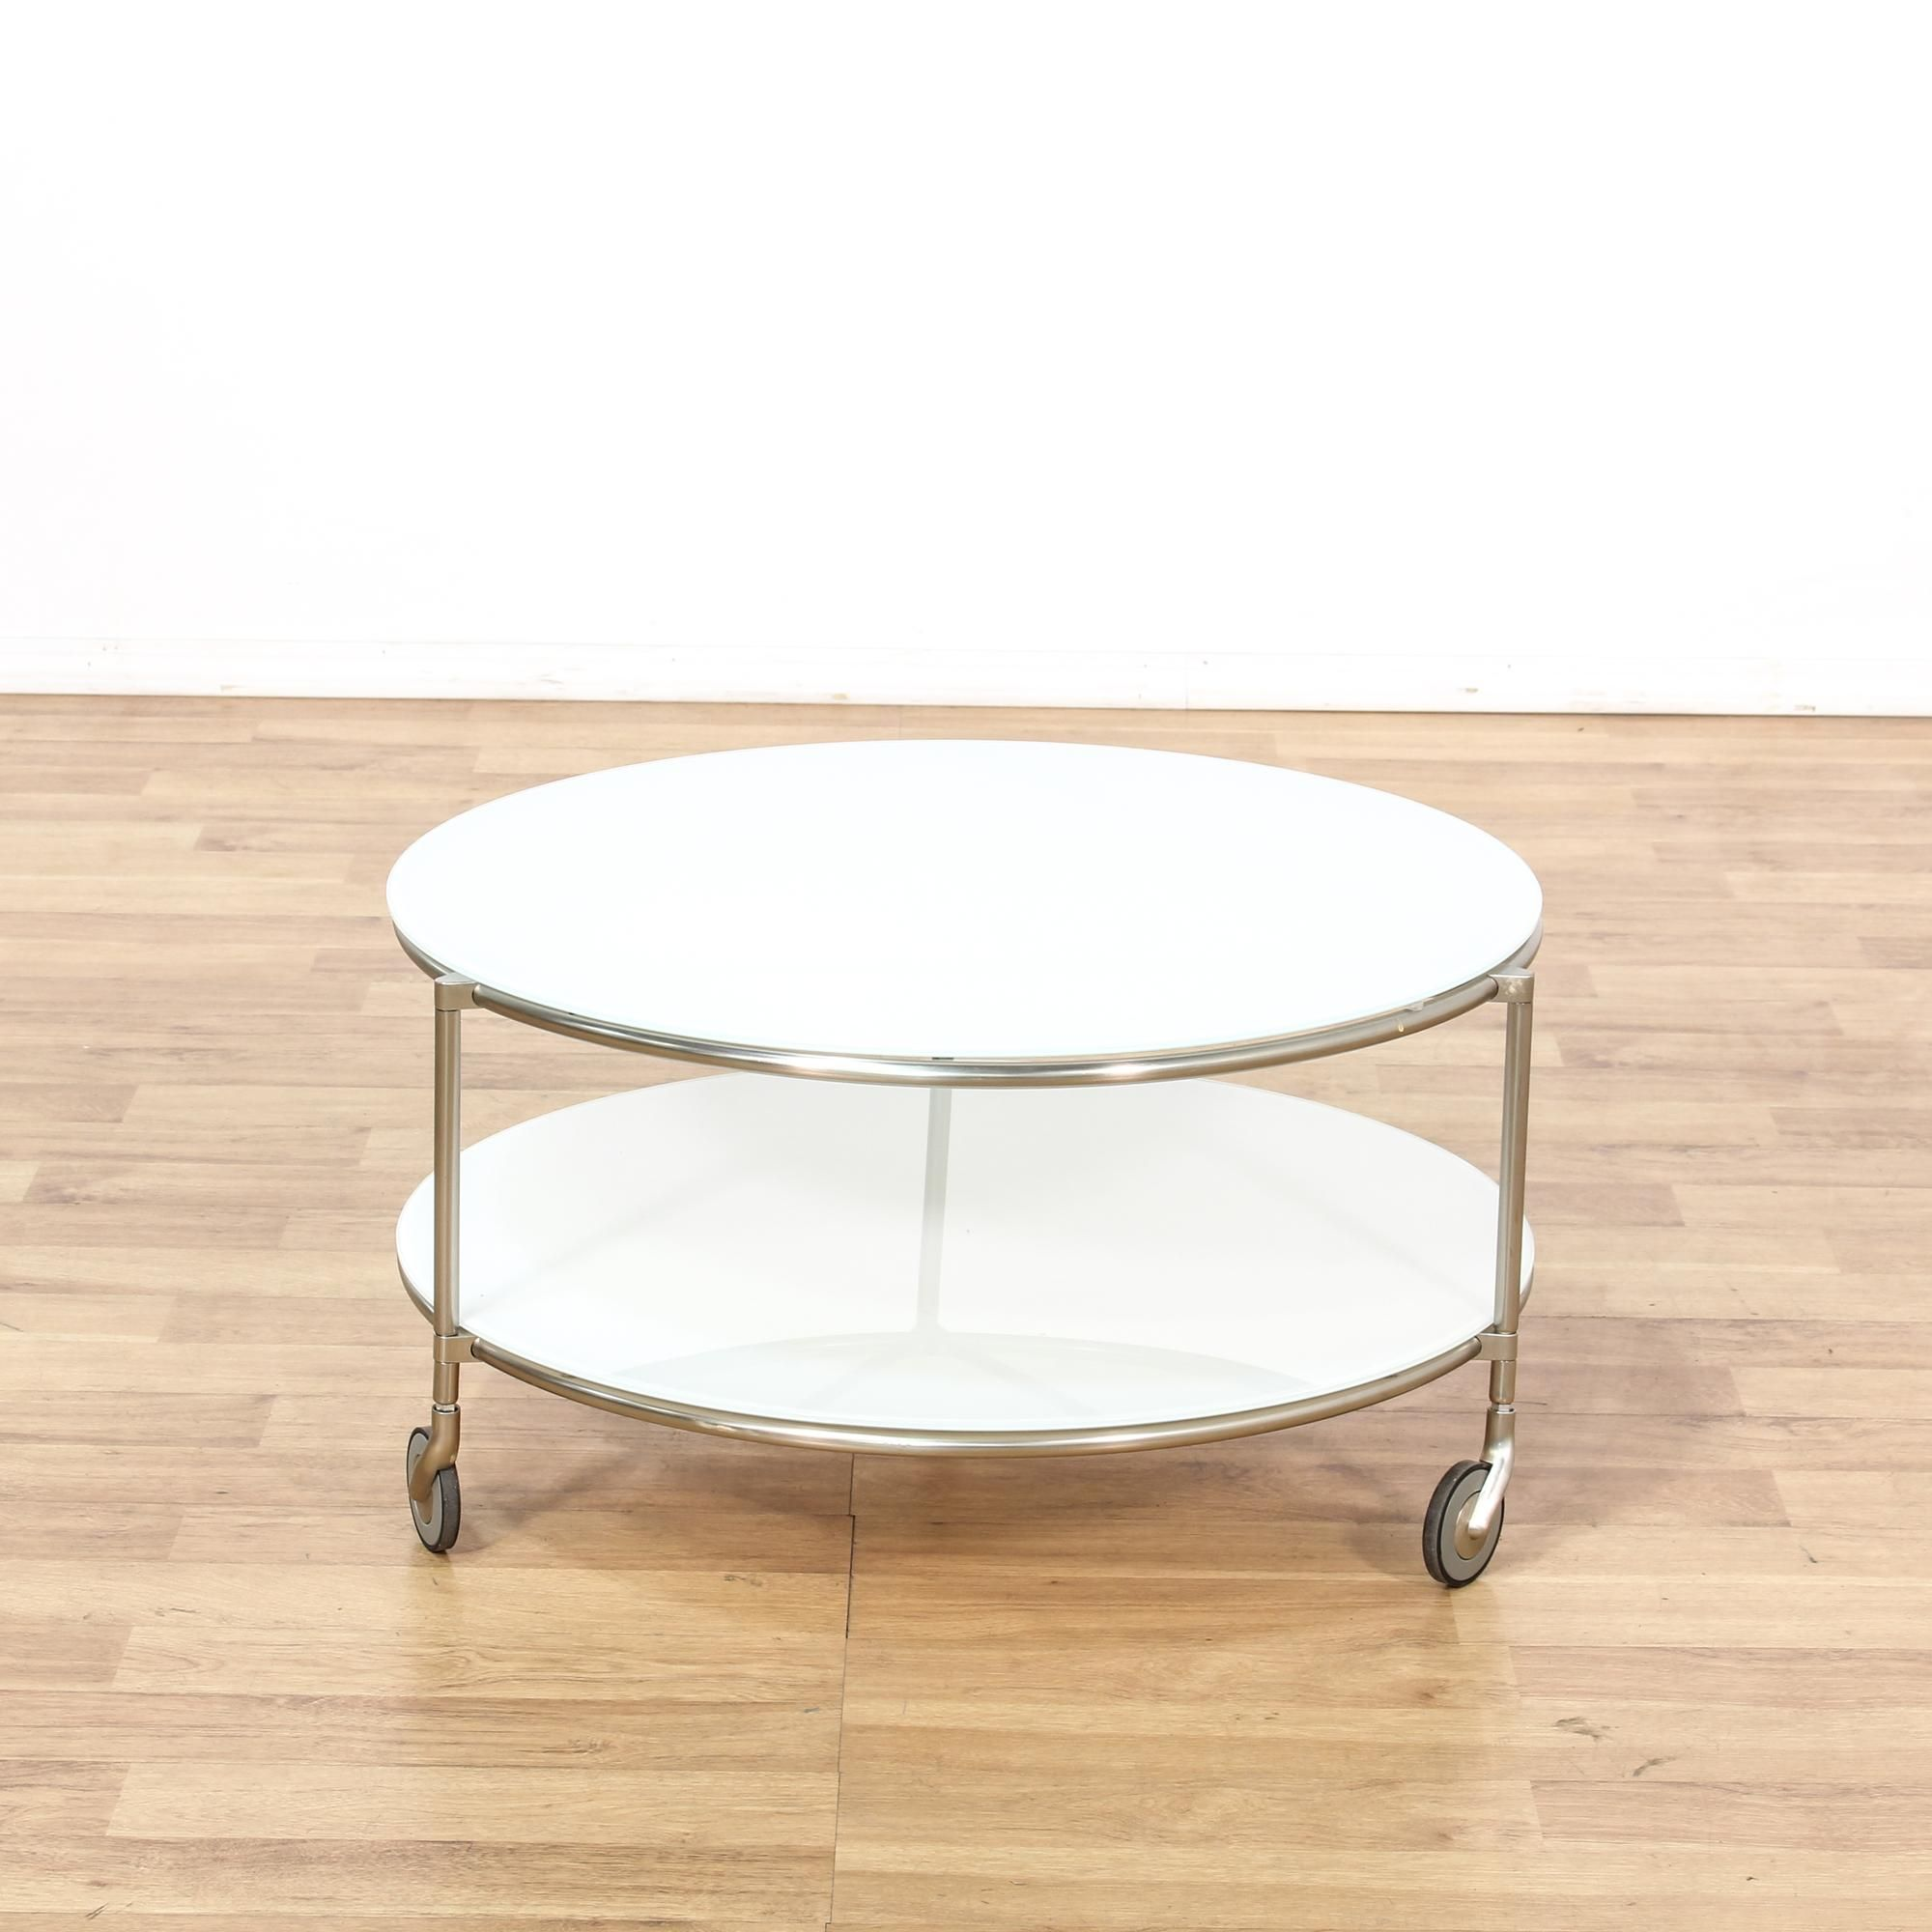 Round Modern 2 Tier Glass Table Round Glass Coffee Table Coffee